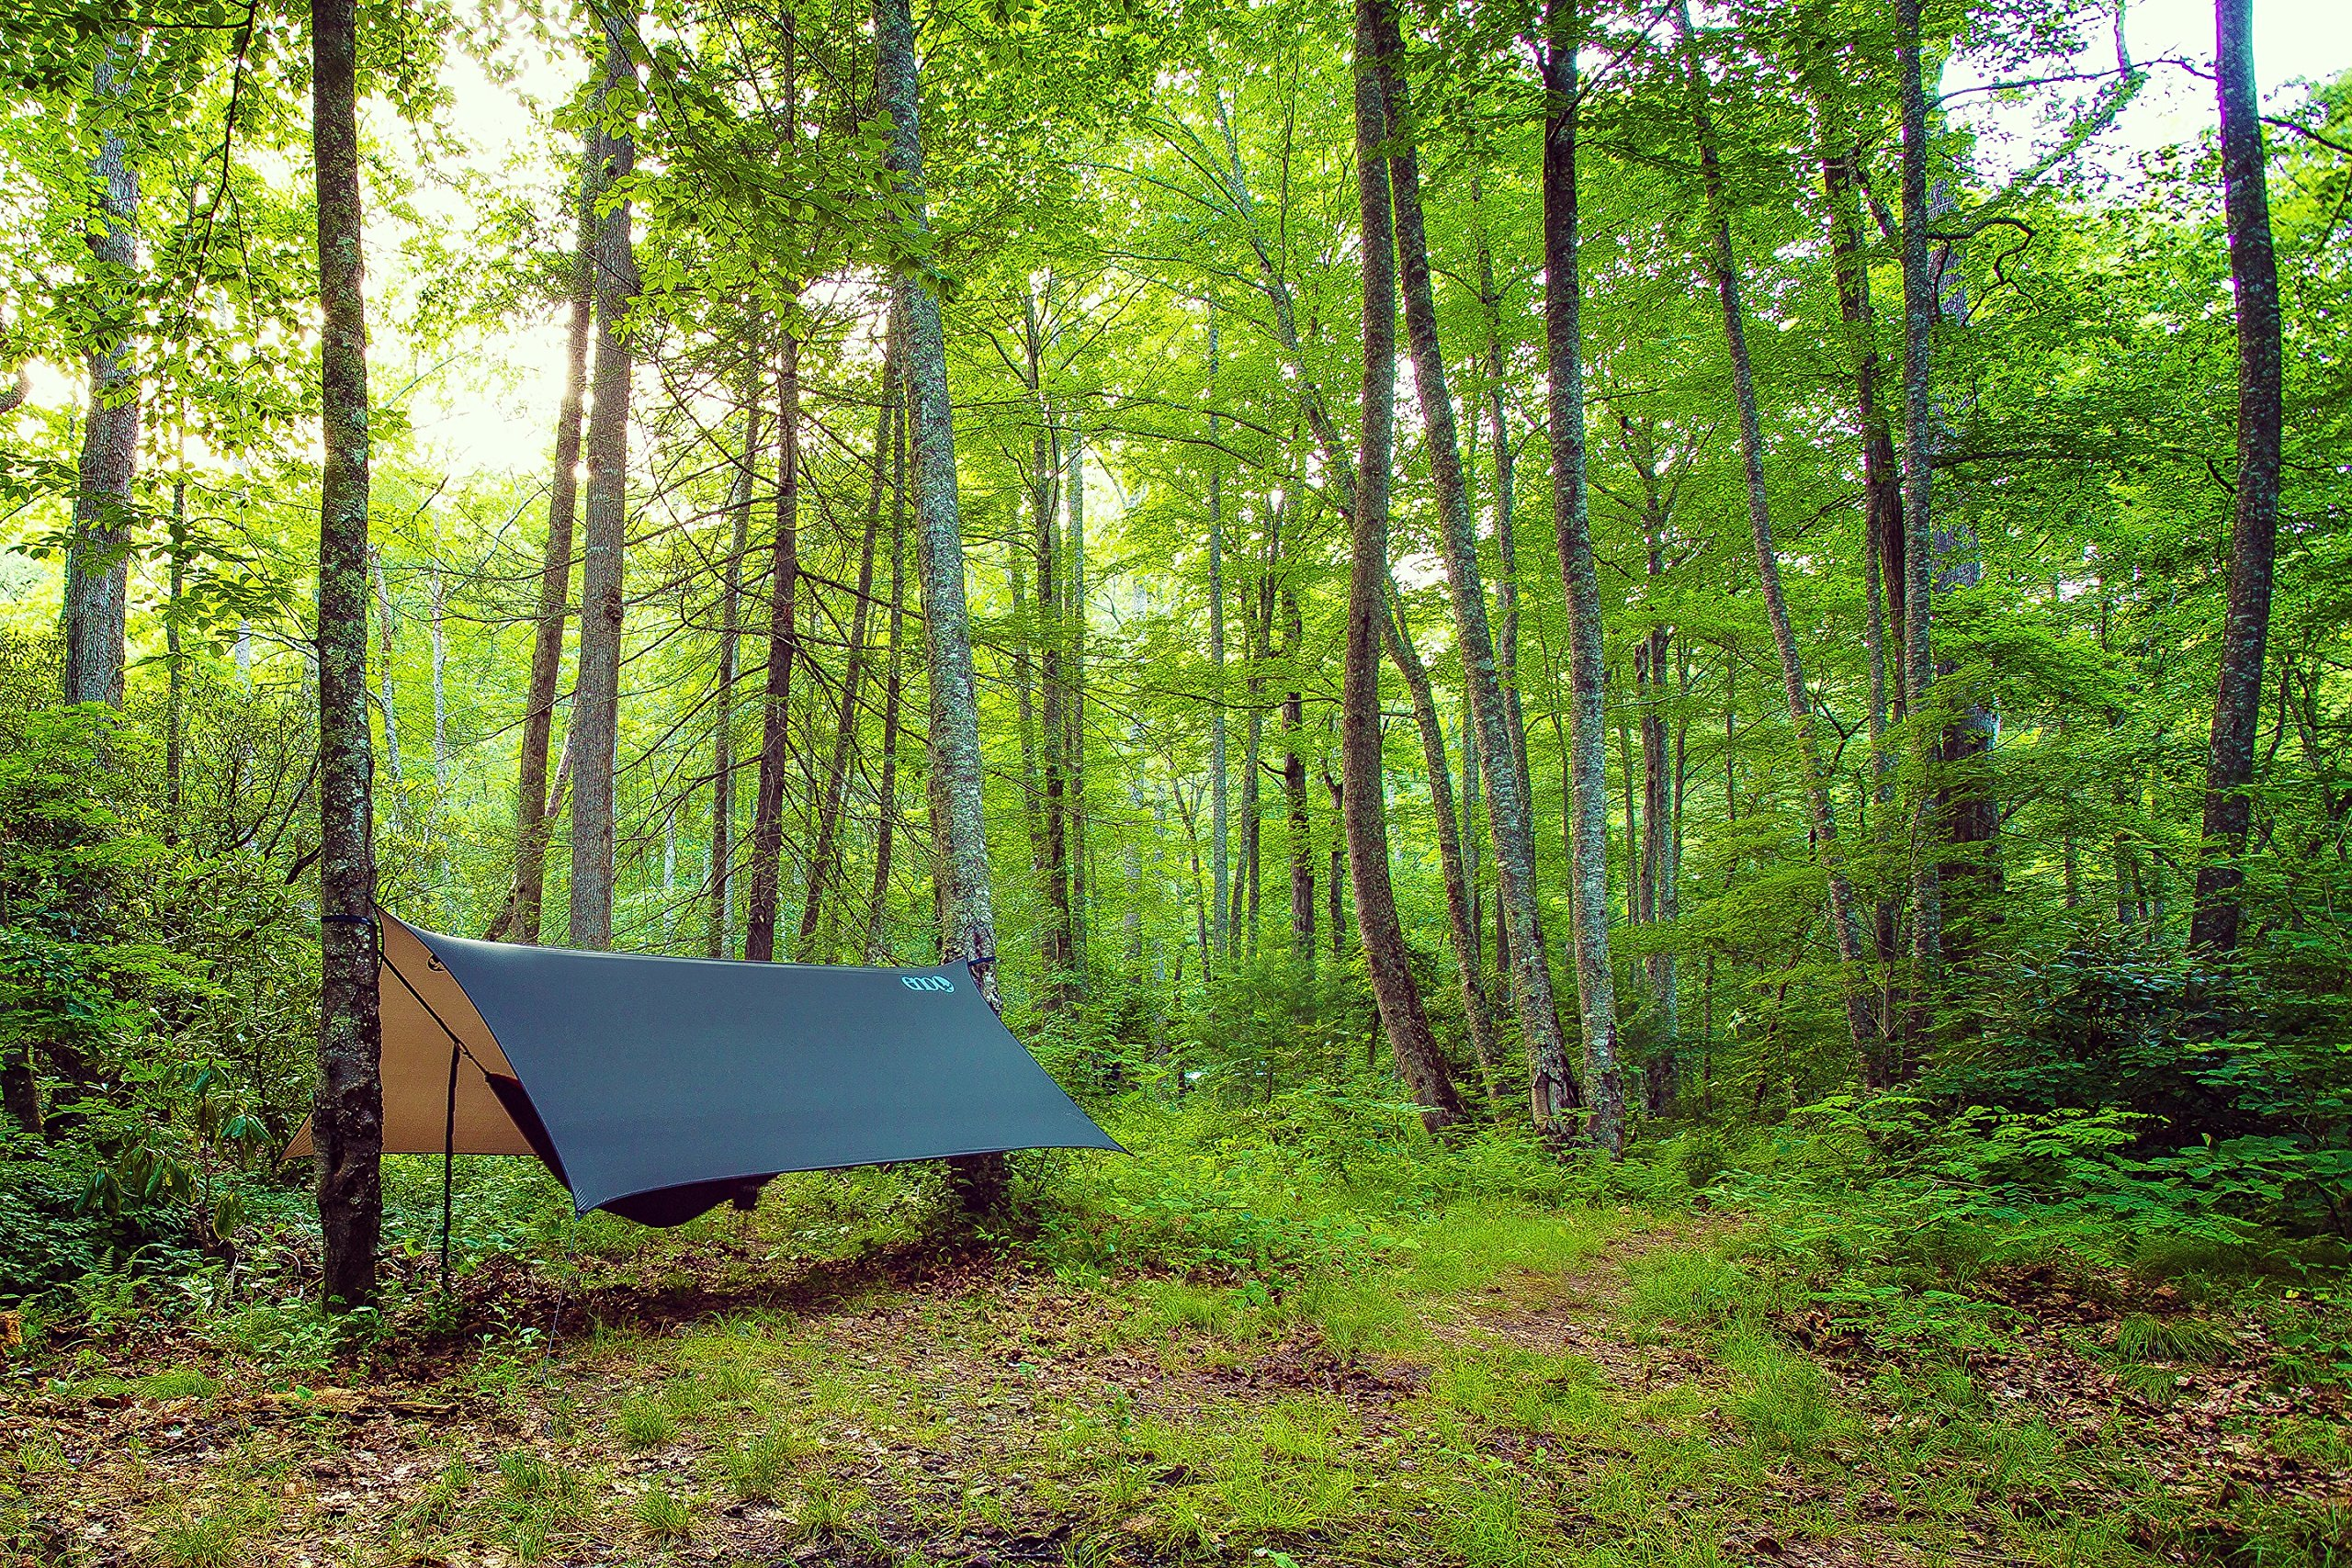 ENO - Eagles Nest Outfitters ProFly XL Rain Tarp, Ultralight Camping Tarp, Navy/Charcoal by ENO